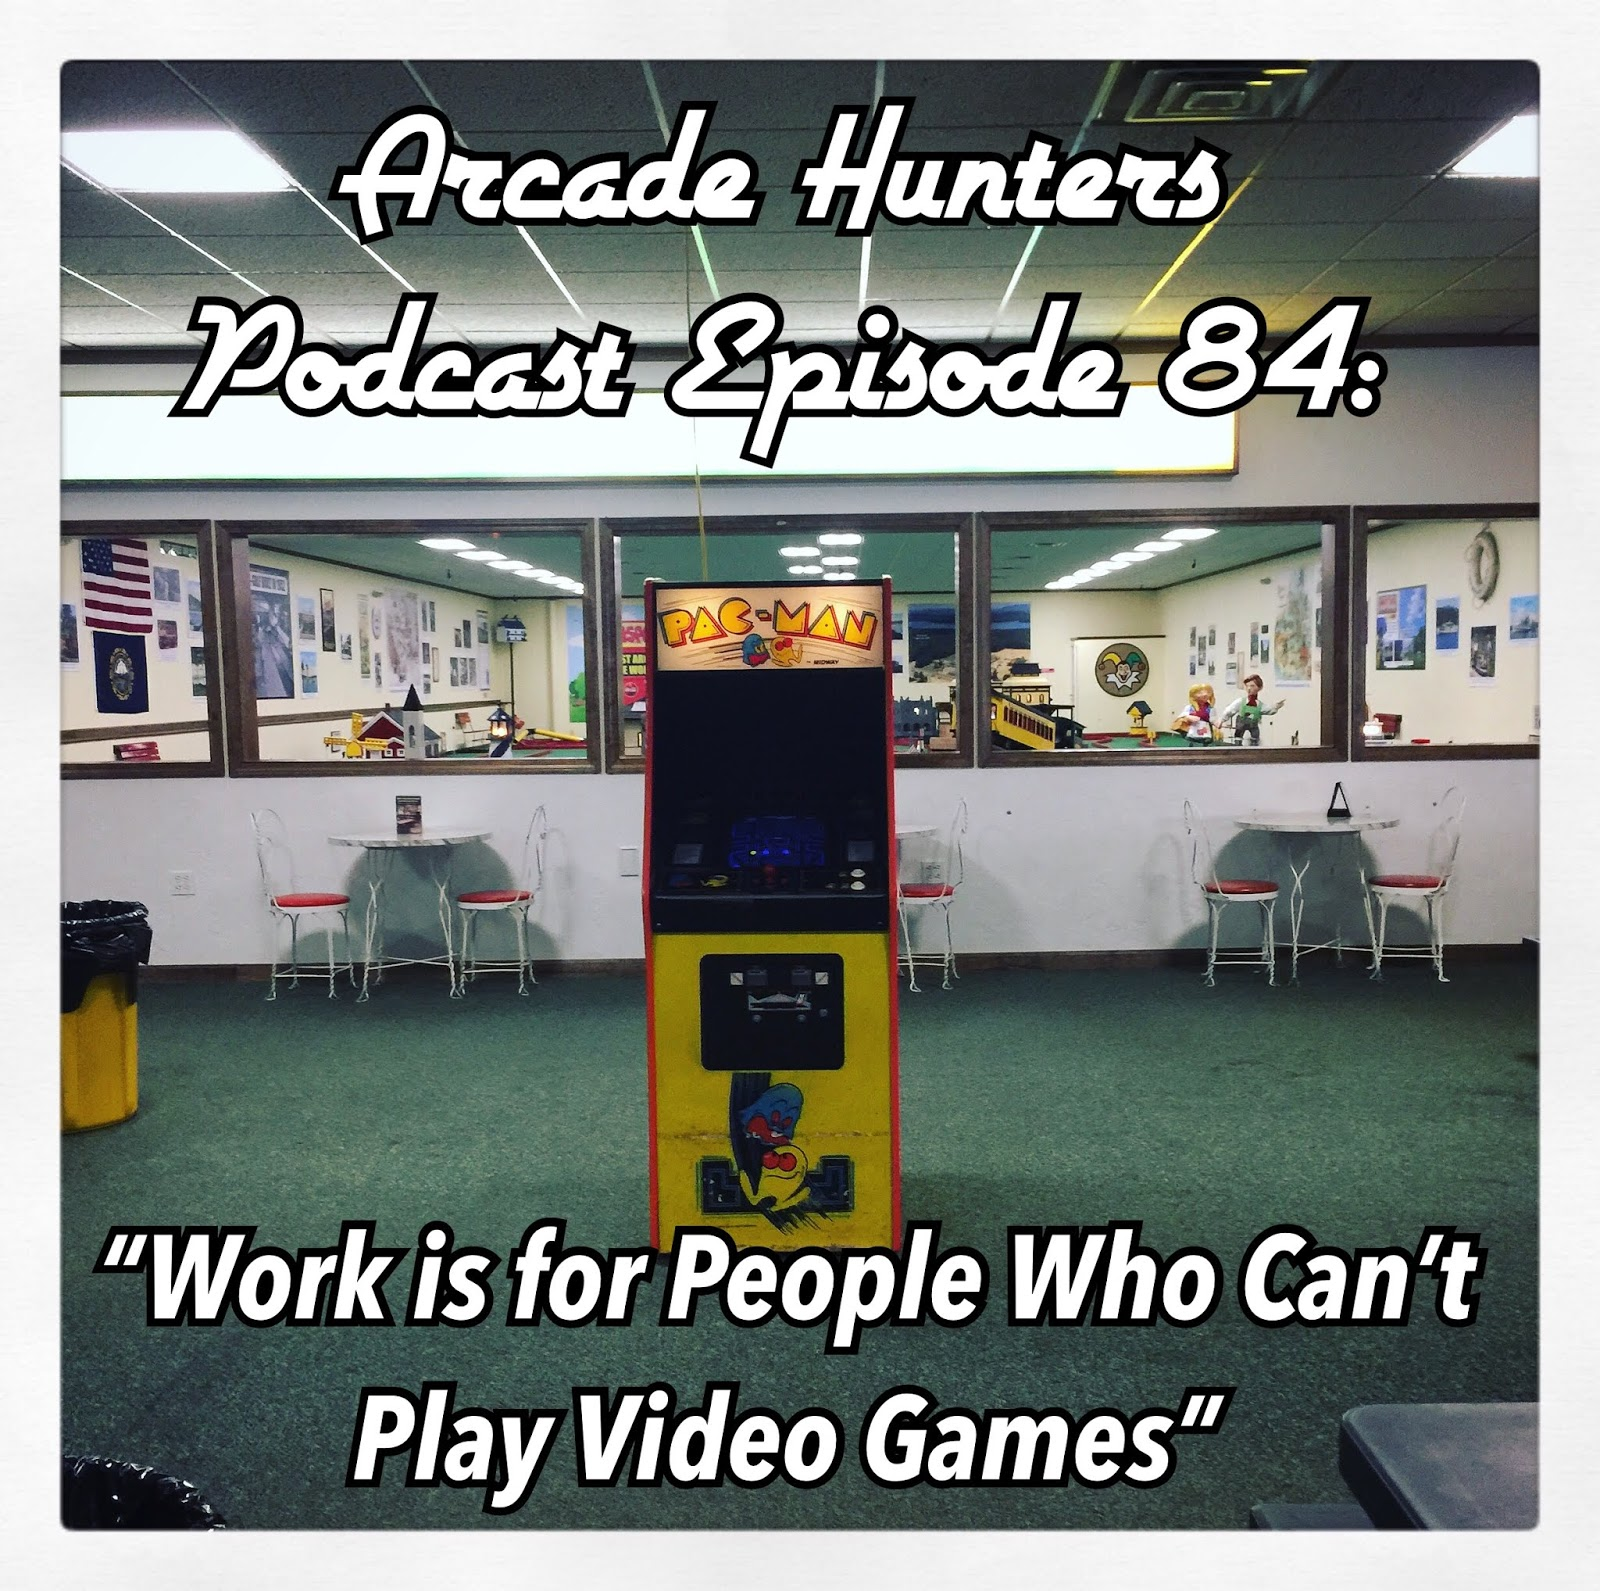 Arcade Hunters: Arcade Hunters Podcast Episode 84: